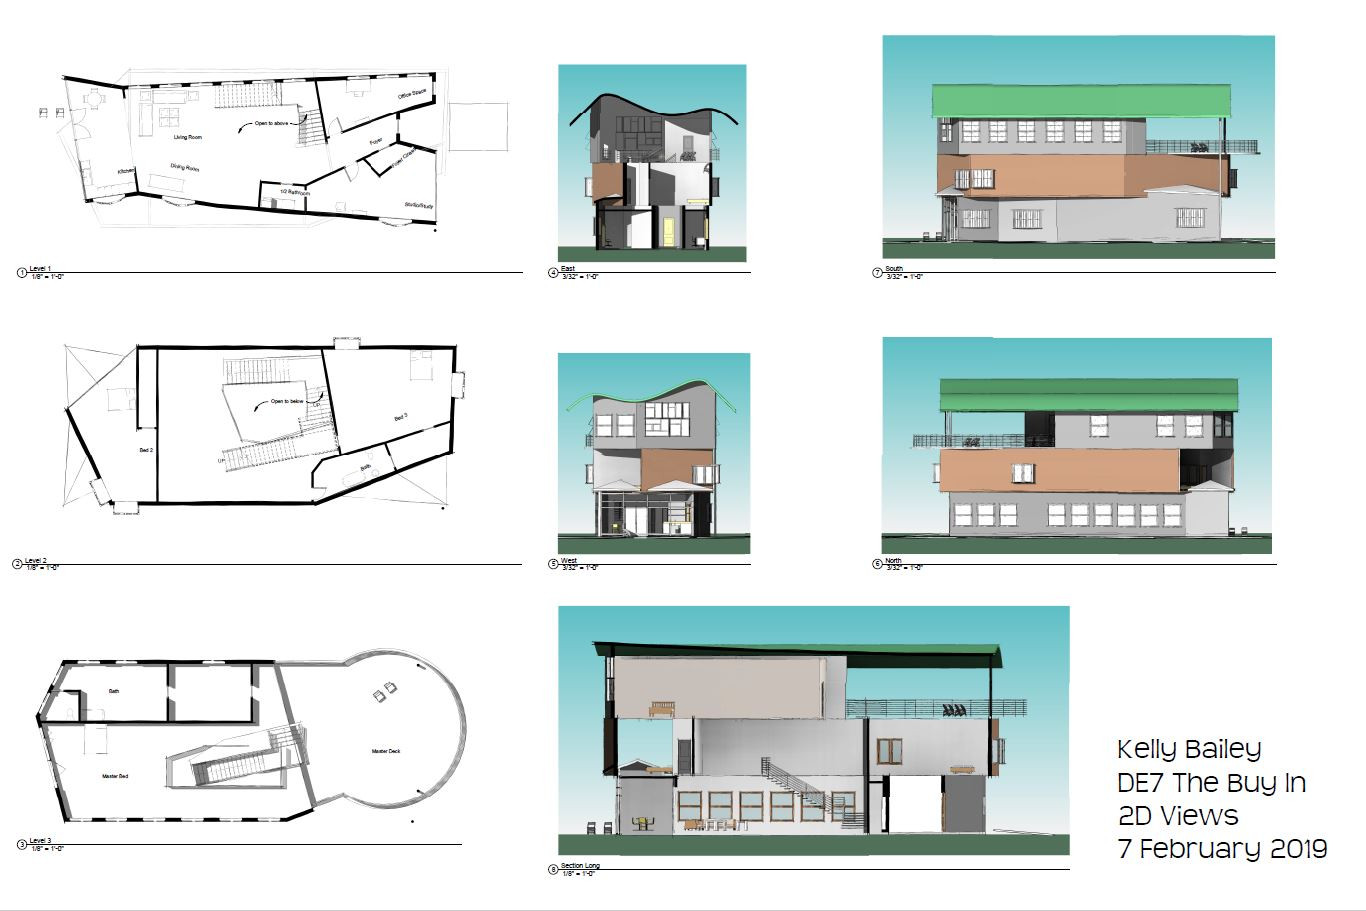 Floor Plans and Elevation Views